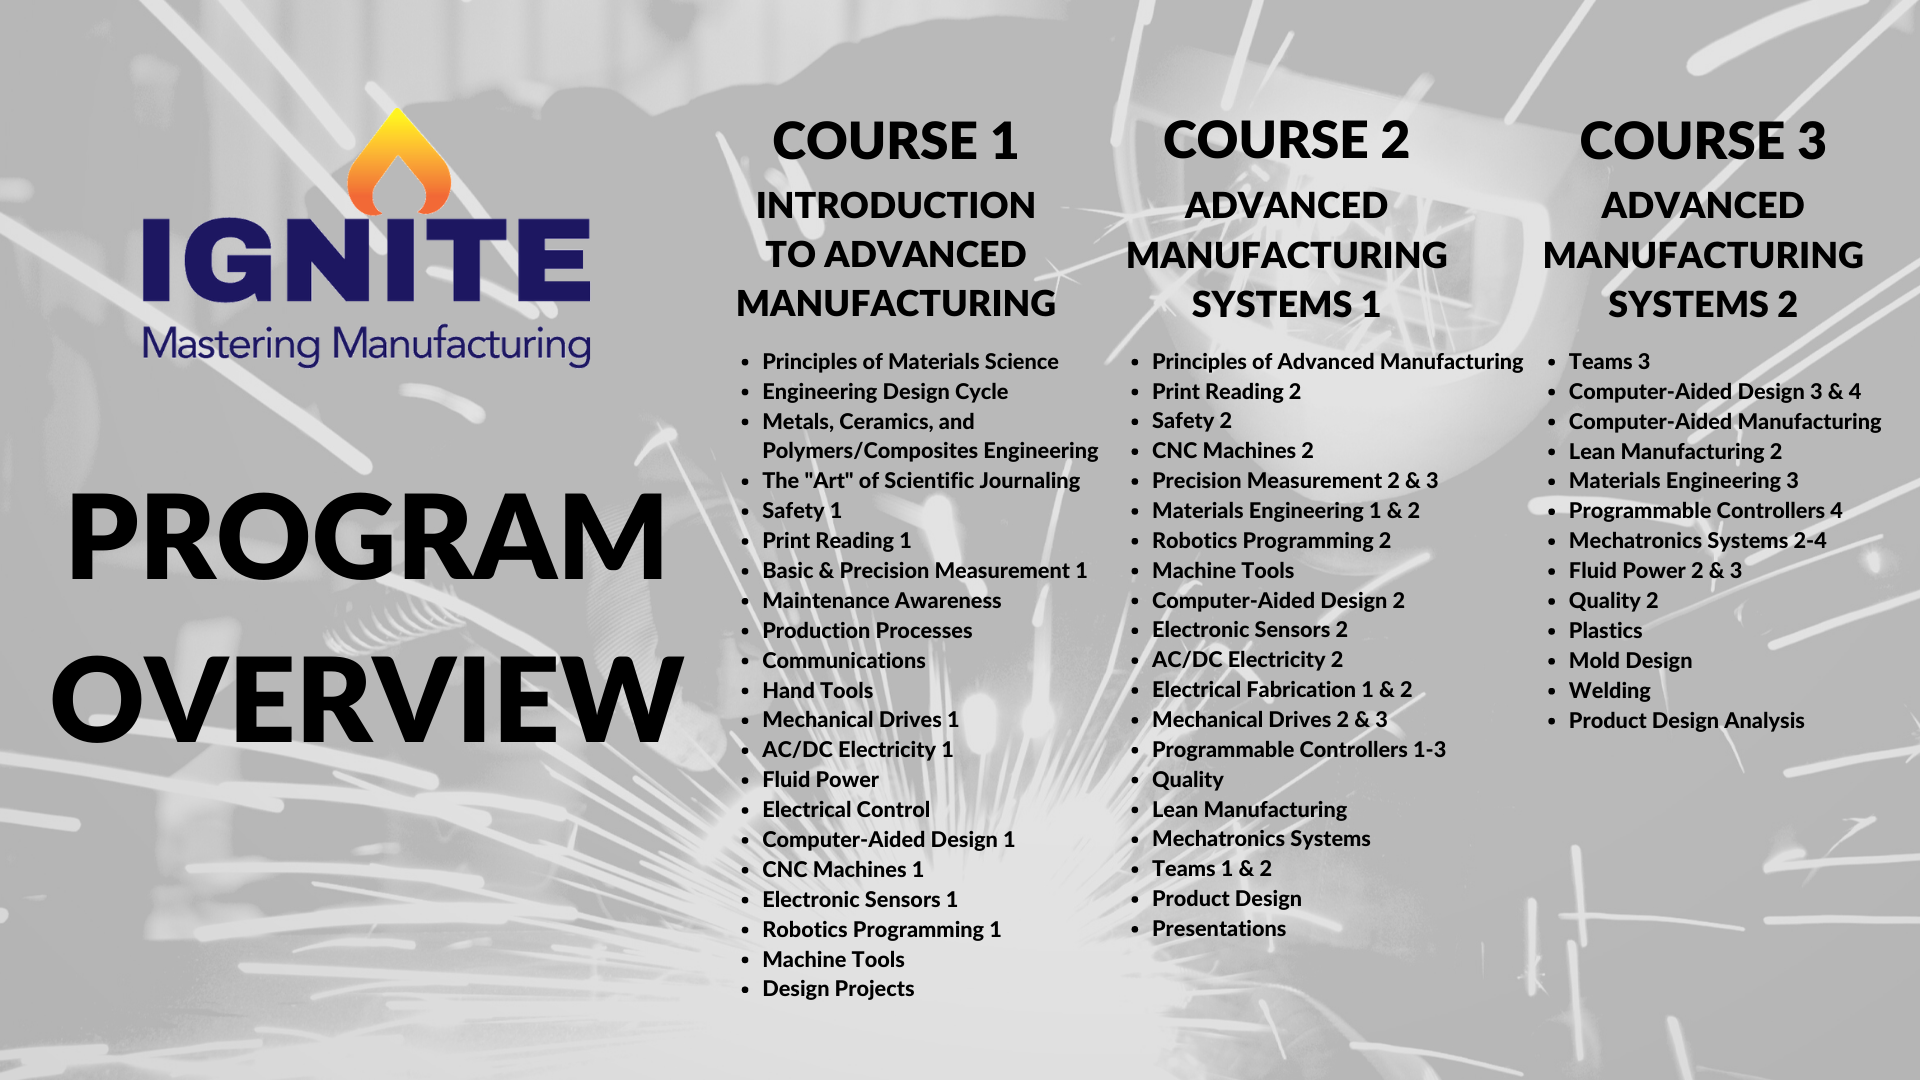 IGNITE Mastering Manufacturing Web Page - Program Overview - Updated BW